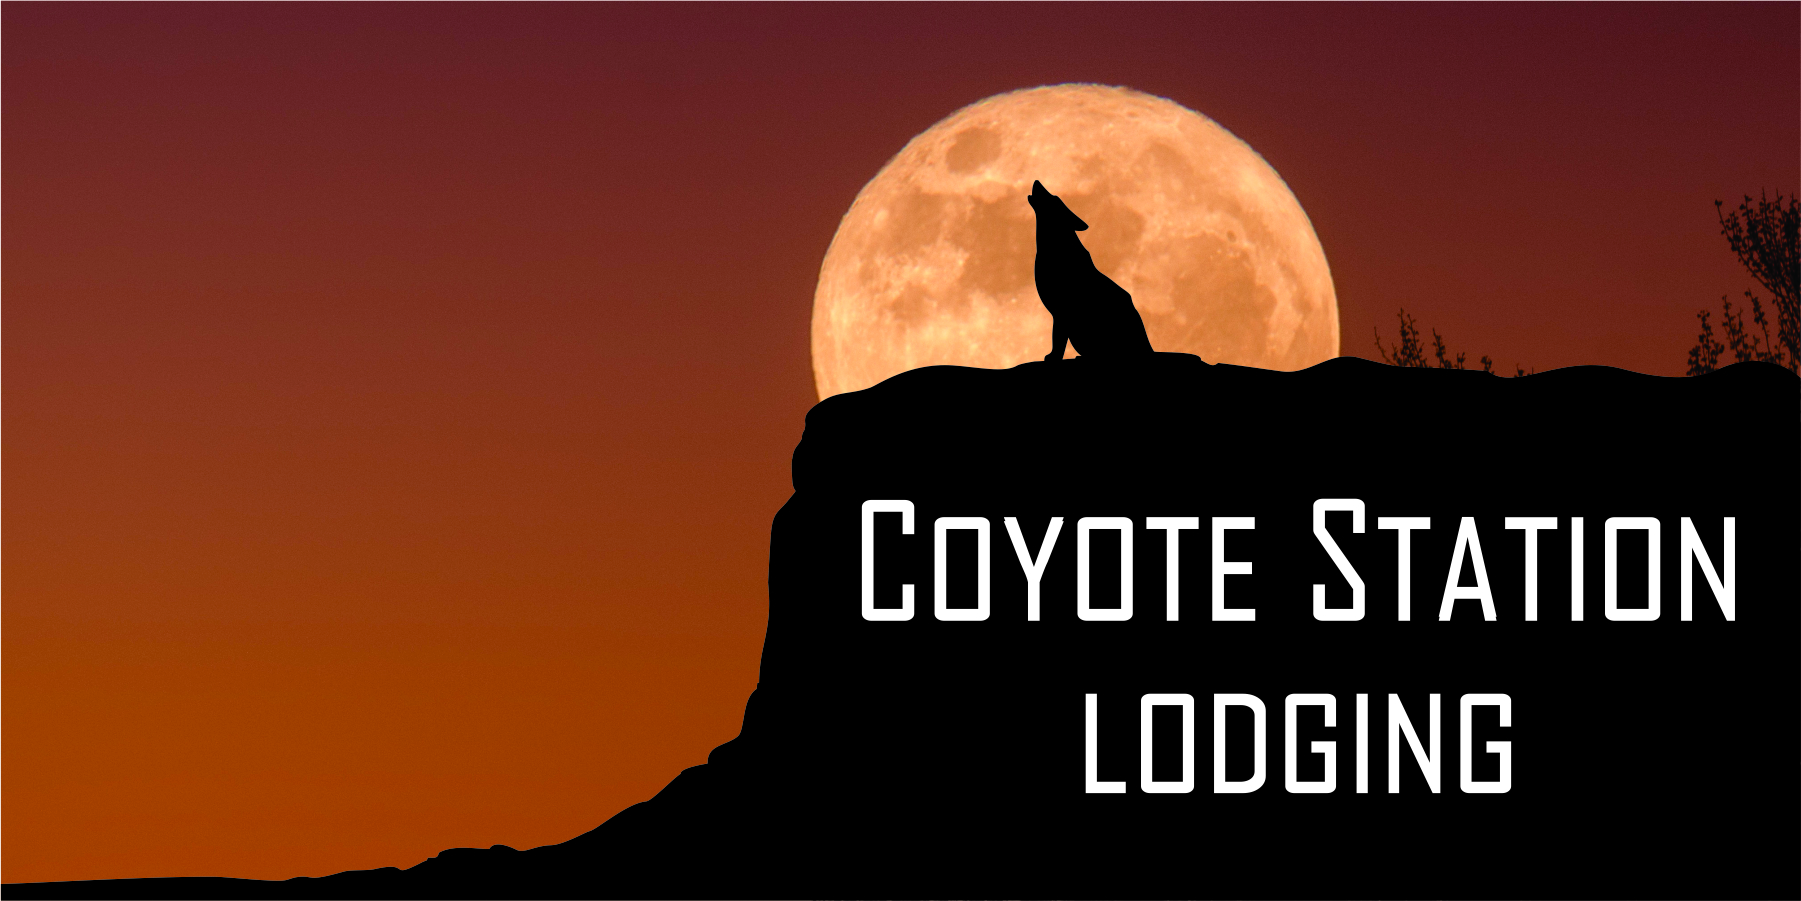 Coyote Station Lodging